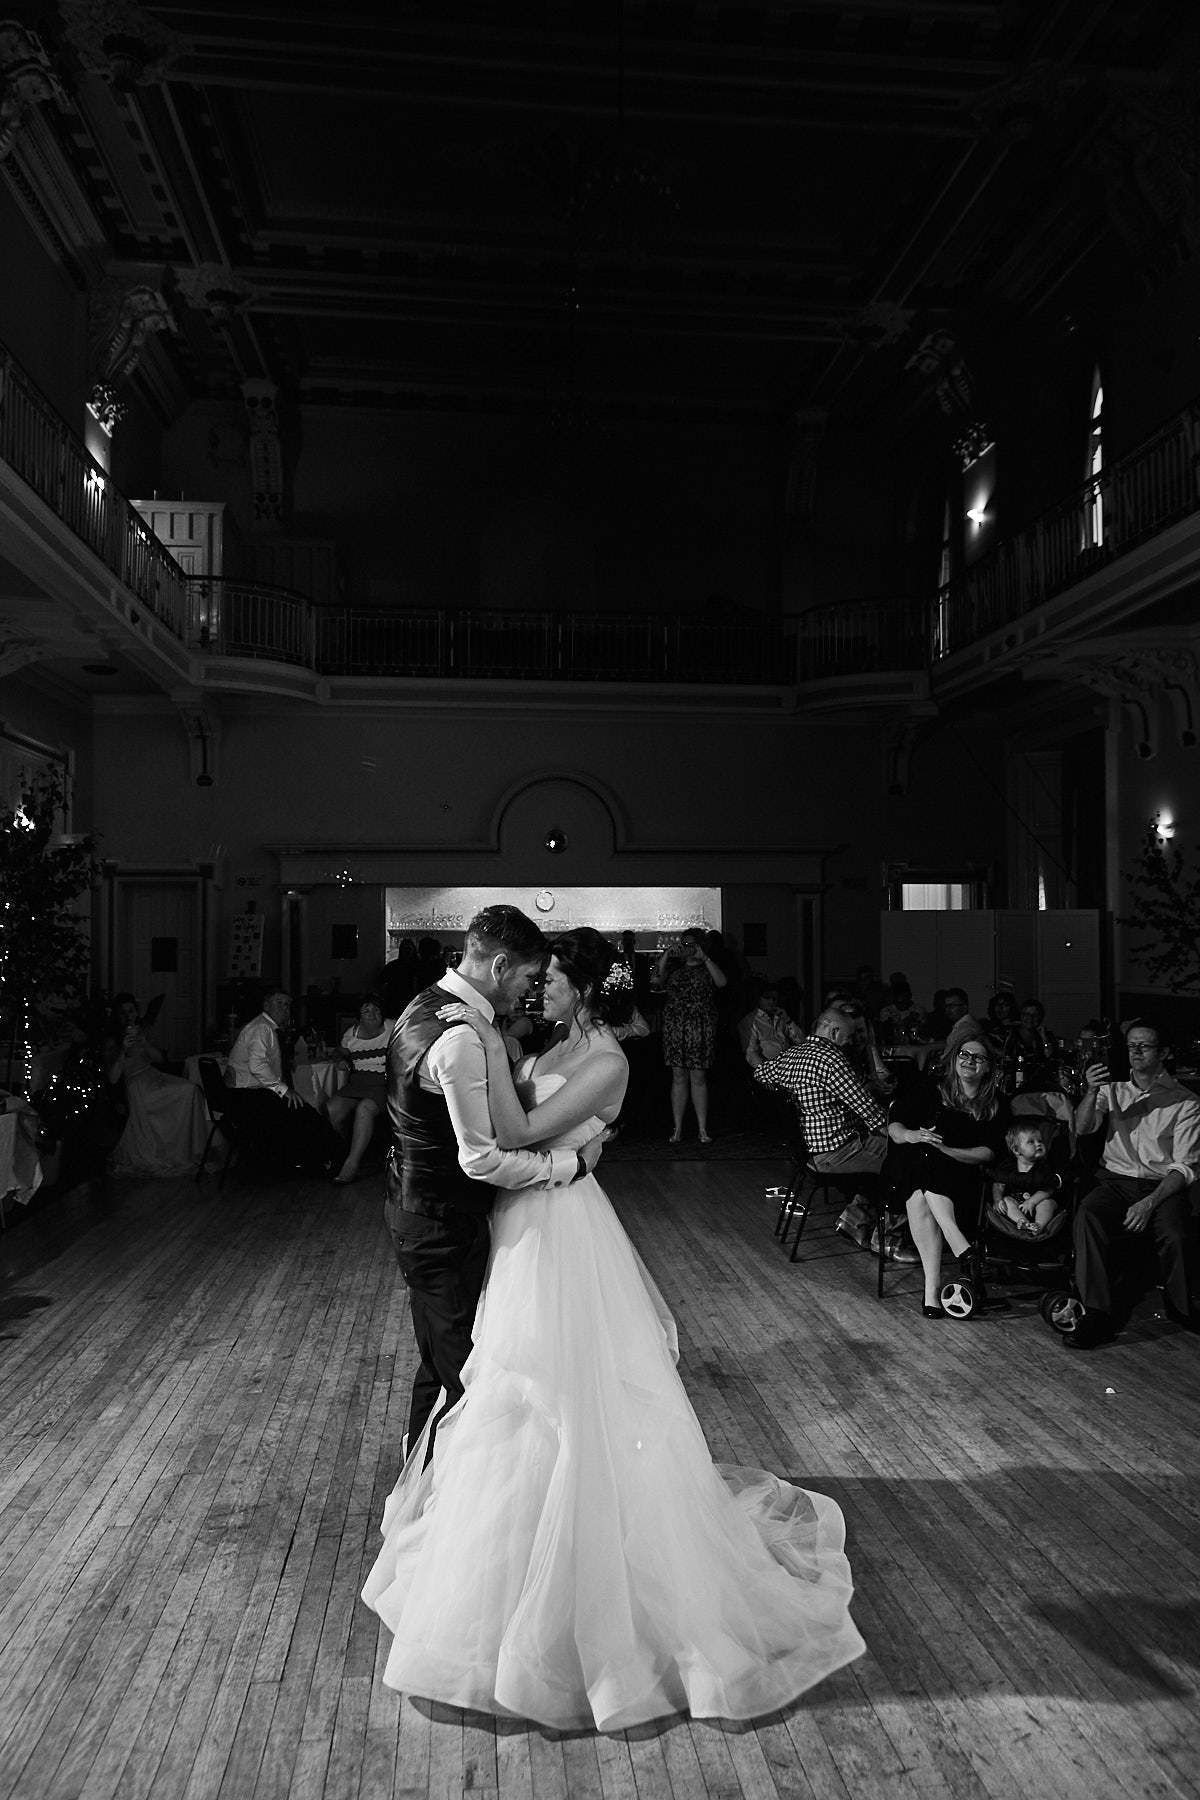 First dance on a dance floor a couple celebrate their marriage